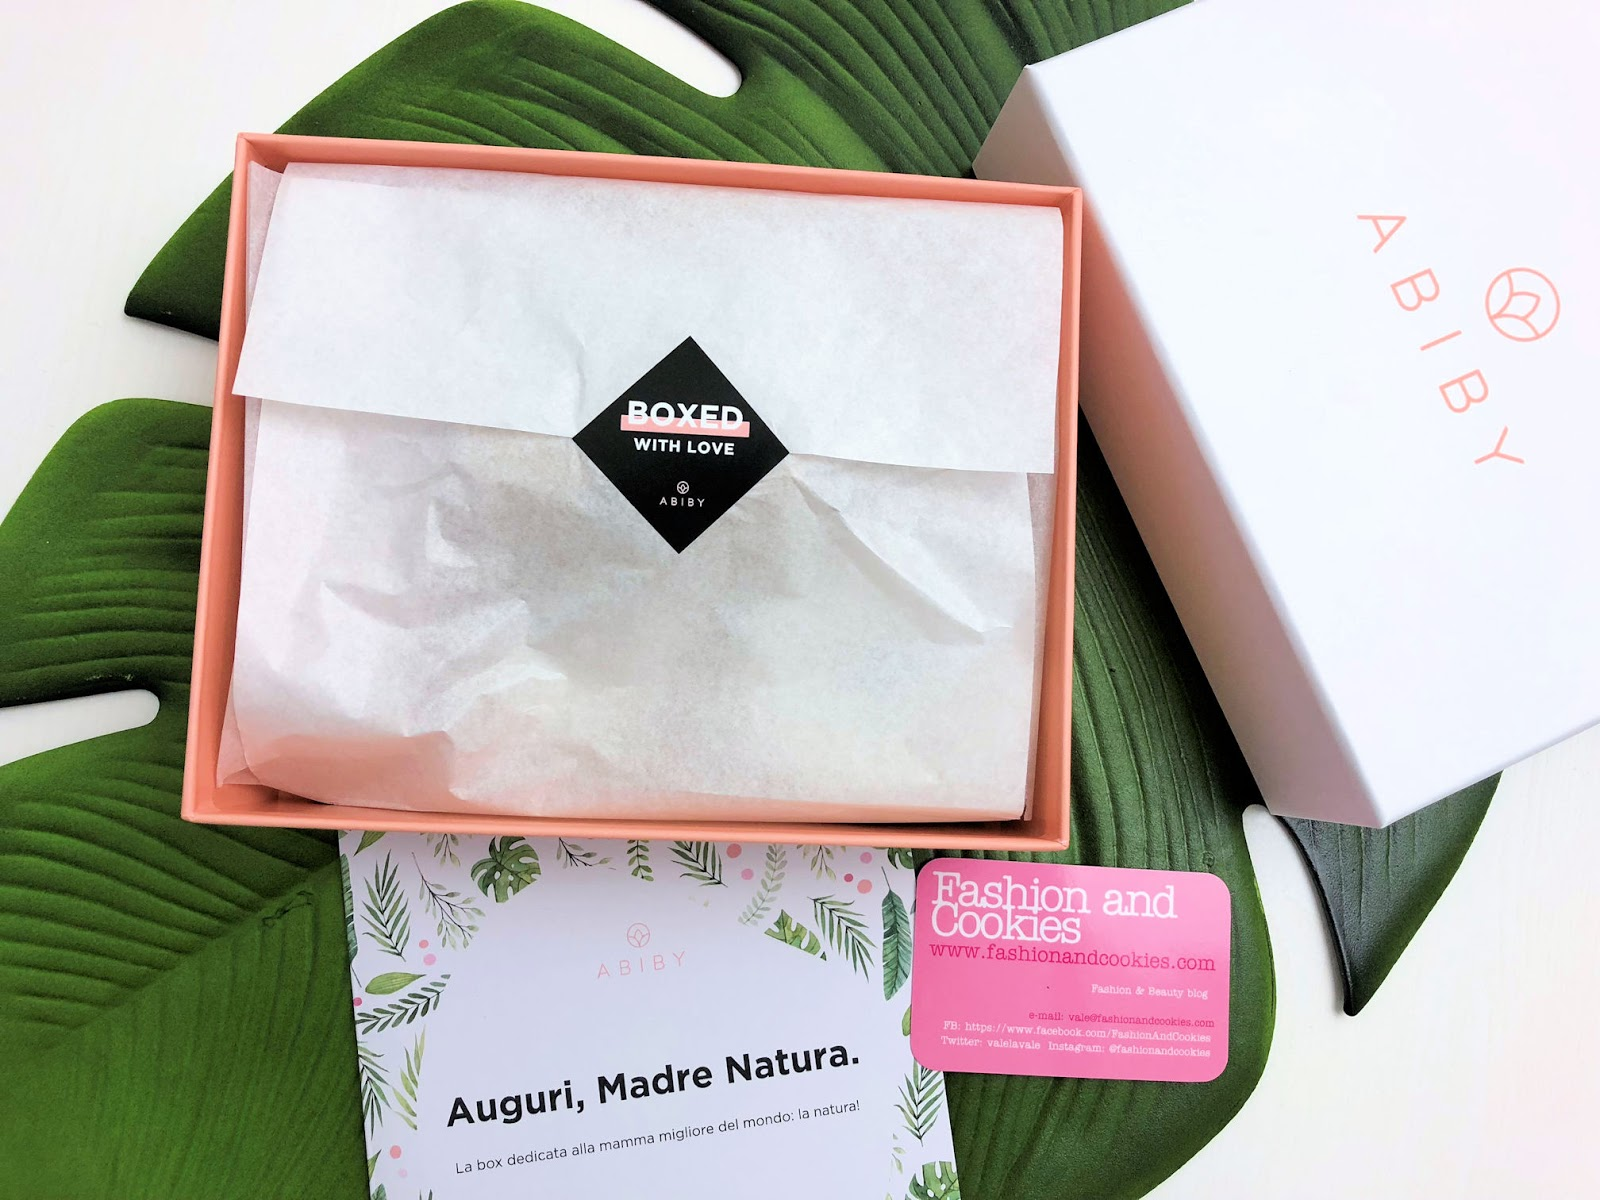 Abiby Beauty Box: bellezza e convenienza su Fashion and Cookies beauty box, beauty blogger